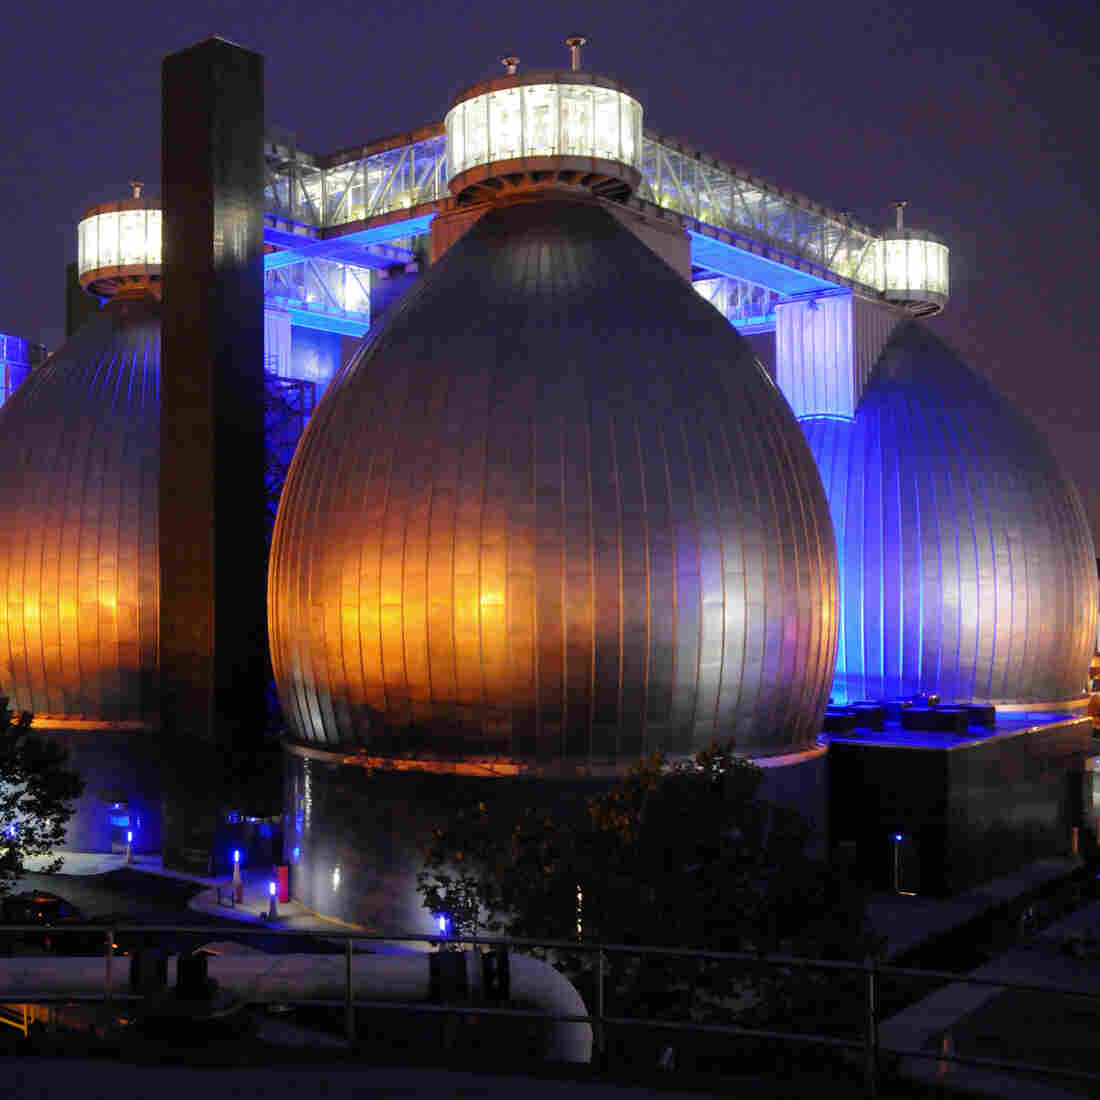 The digester eggs at Newtown Creek Wastewater Treatment Plant in Brooklyn contain millions of gallons of black sludge.